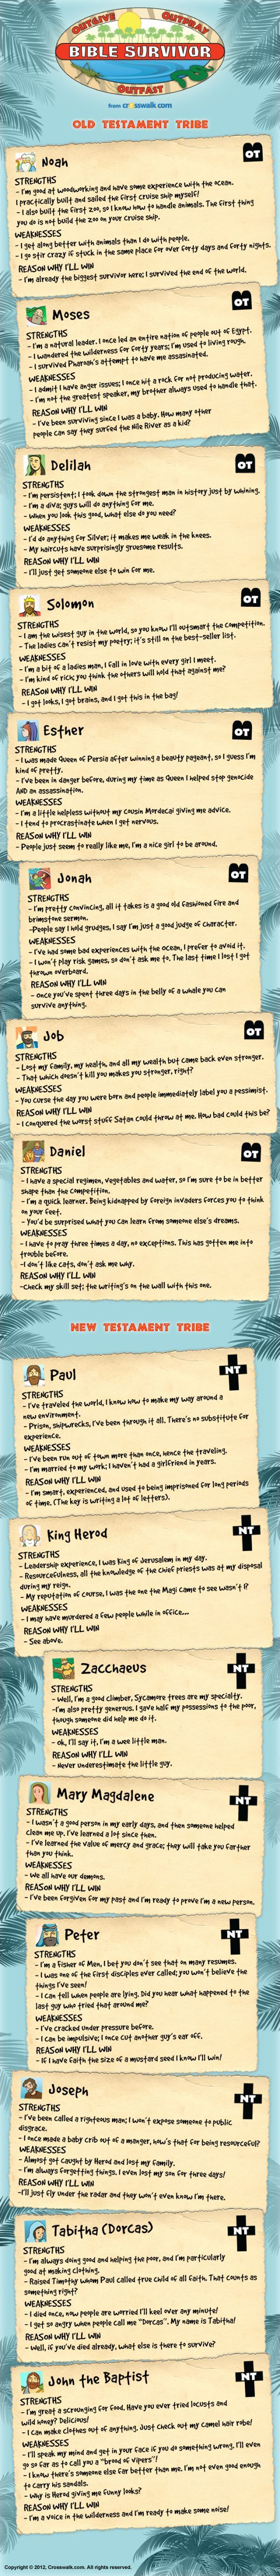 If Bible Characters Played Survivor! ~ OMG I LOVE THIS!!! Have to figure out how to add this into an assignment!.